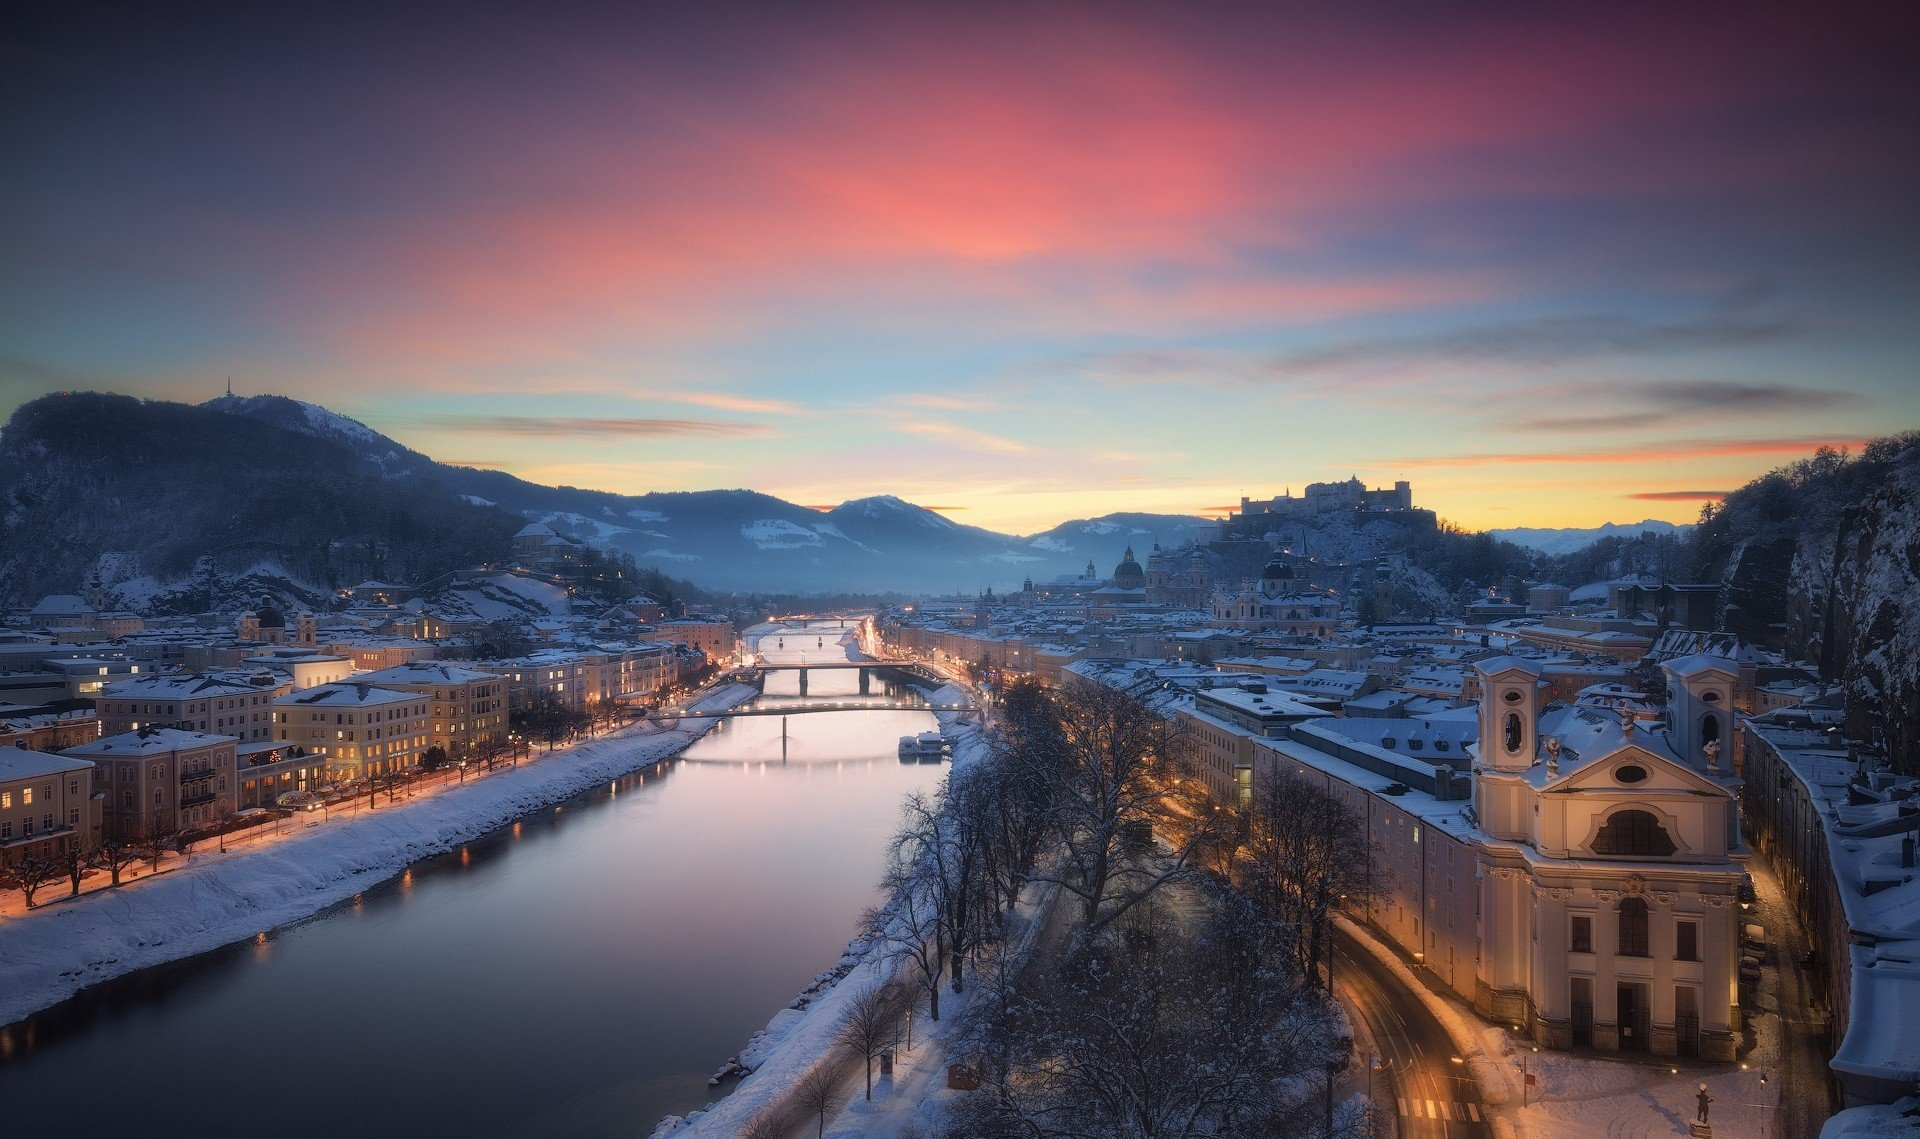 3d Wallpaper For Home Screen Salzburg Austria Wallpapers Hd Desktop And Mobile